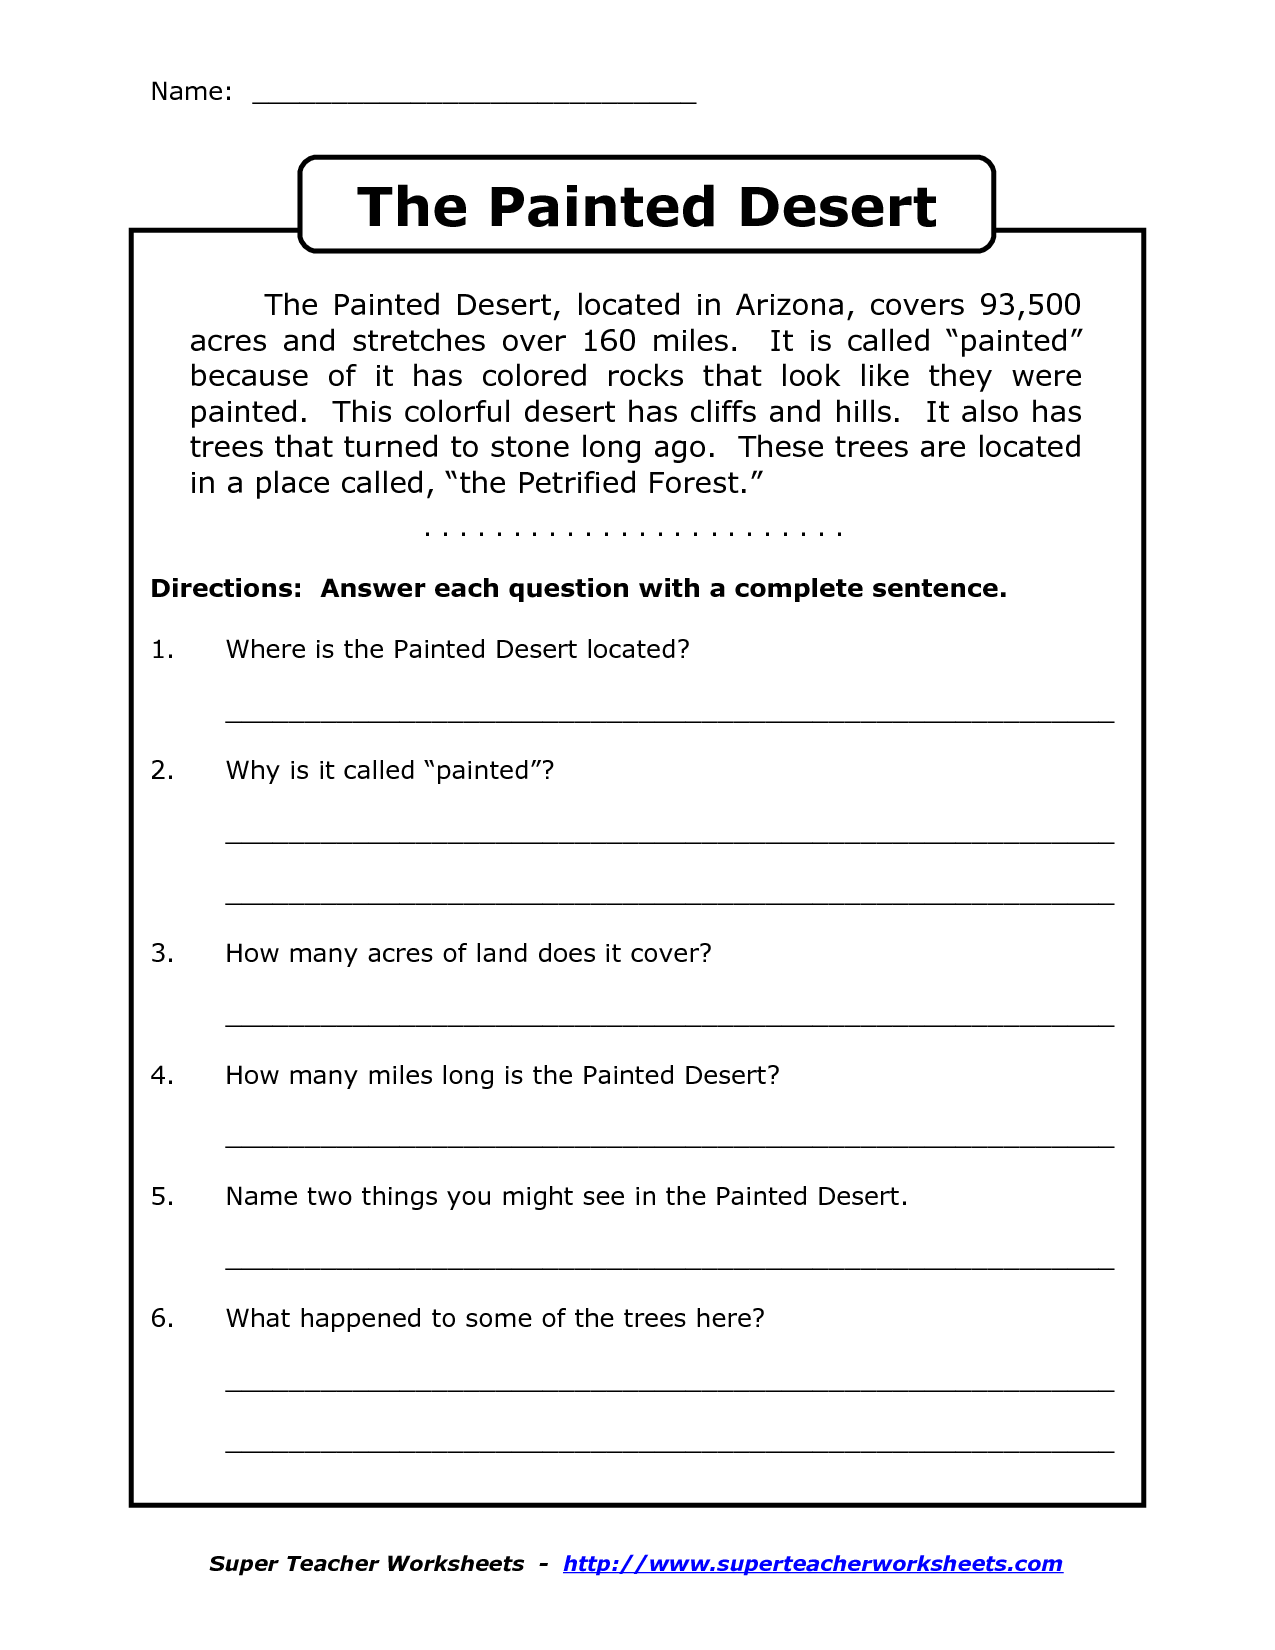 Worksheets Free 5th Grade Reading Comprehension Worksheets reading worksheets for 4th grade comprehension 3 name the painted desert